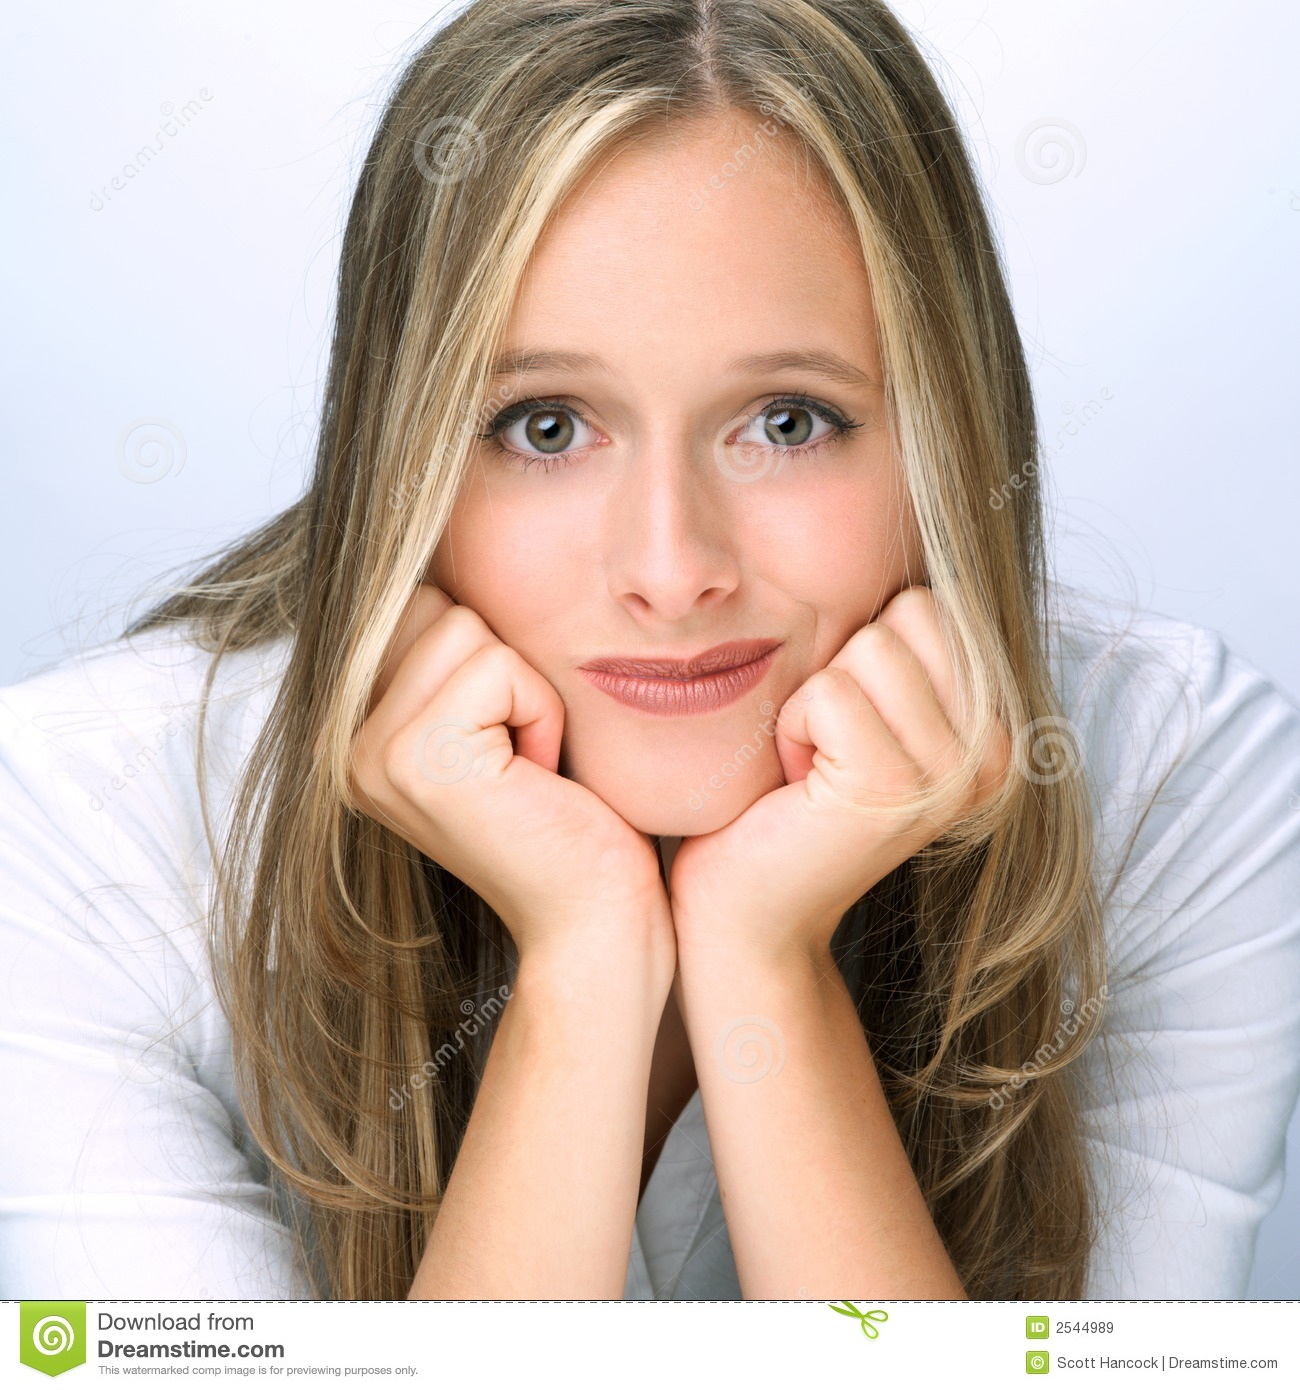 Https Www Dreamstime Com Royalty Free Stock Images Teenage Girl Image2544989